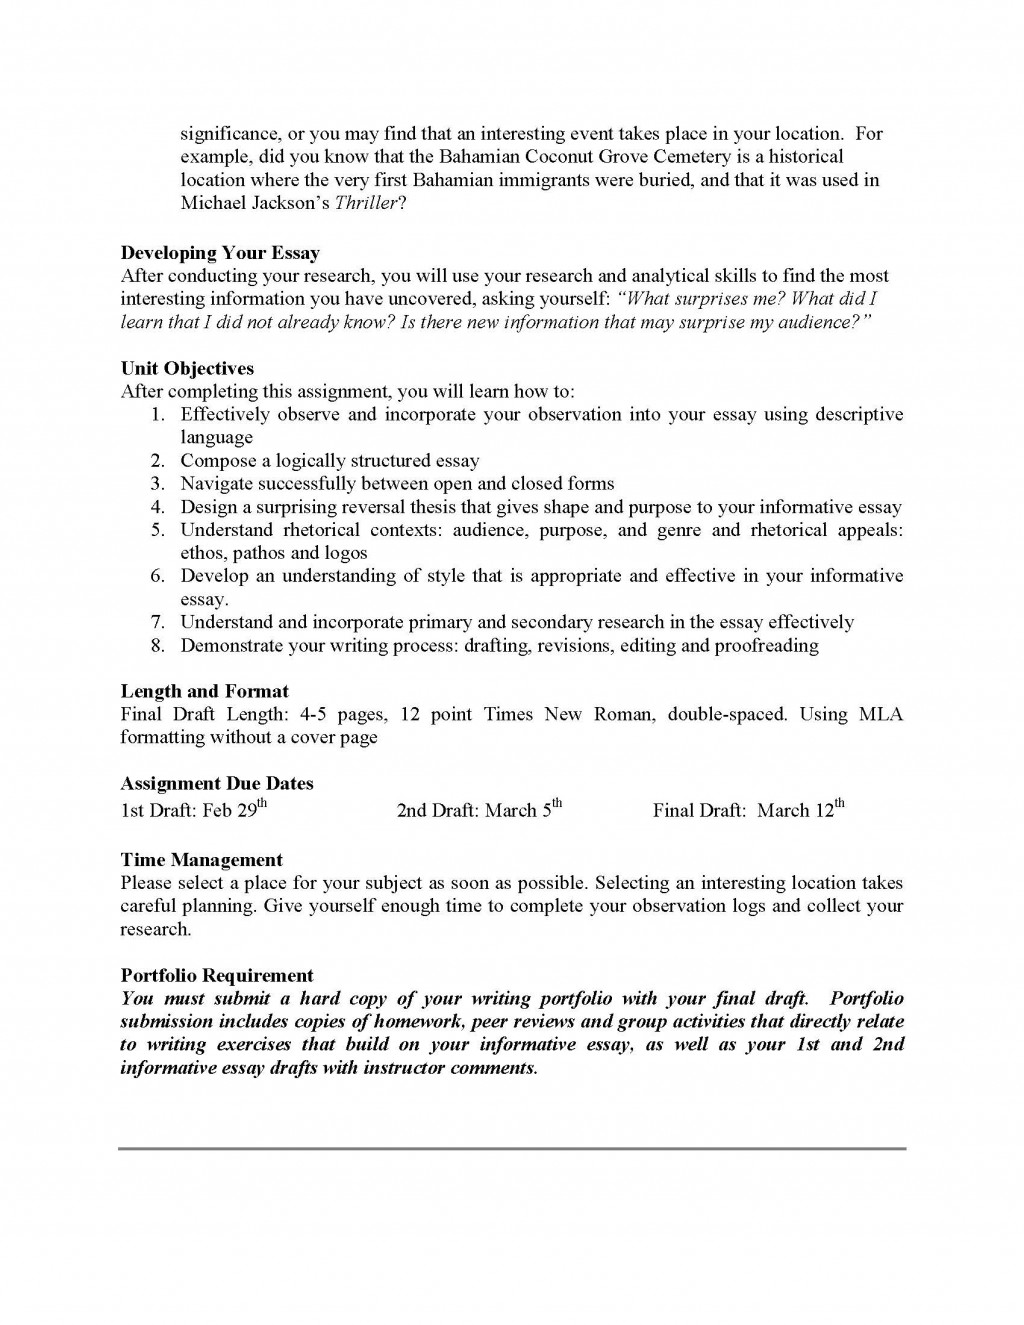 011 Essay Example Informational Informative Unit Assignment Page 2 Unforgettable Topics For Middle School Students Writing Prompts With Articles Examples Large